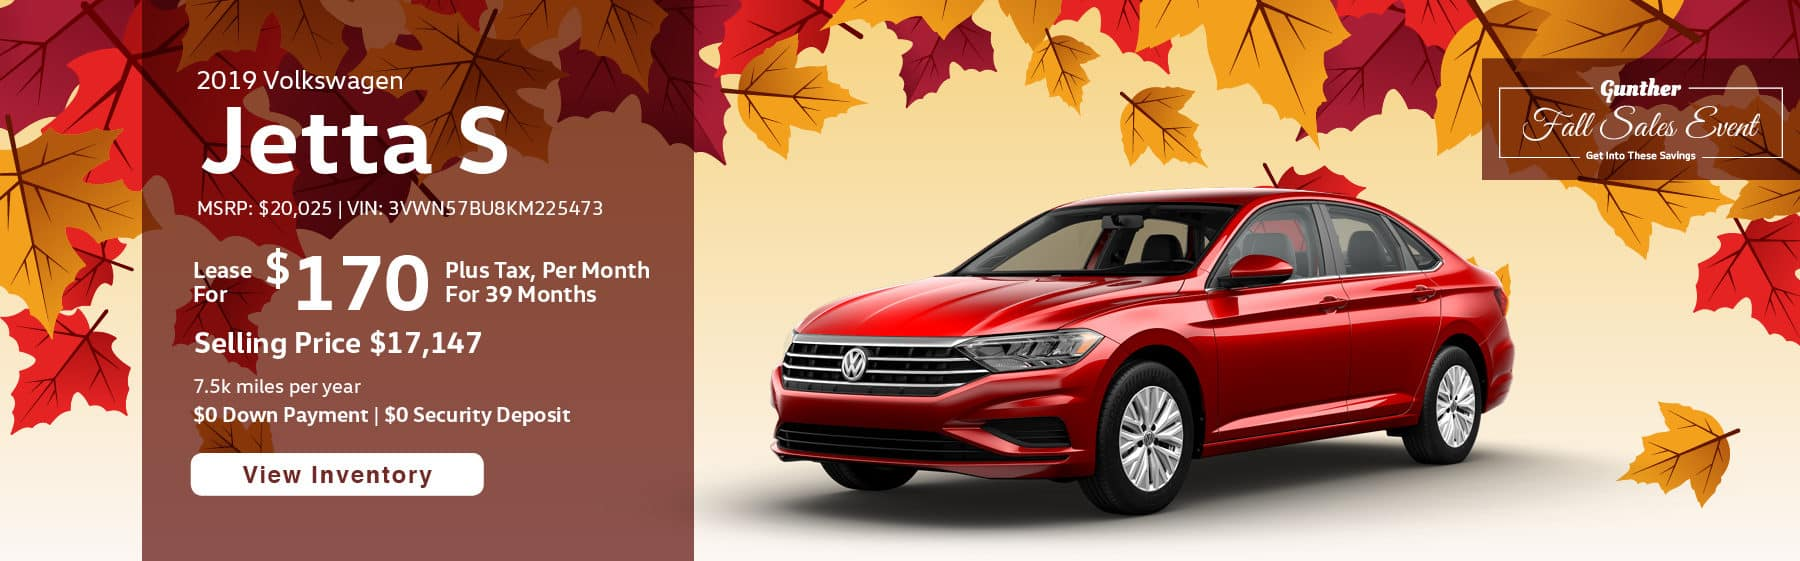 Lease the 2019 Jetta S for $170 per month, plus tax for 39 months.